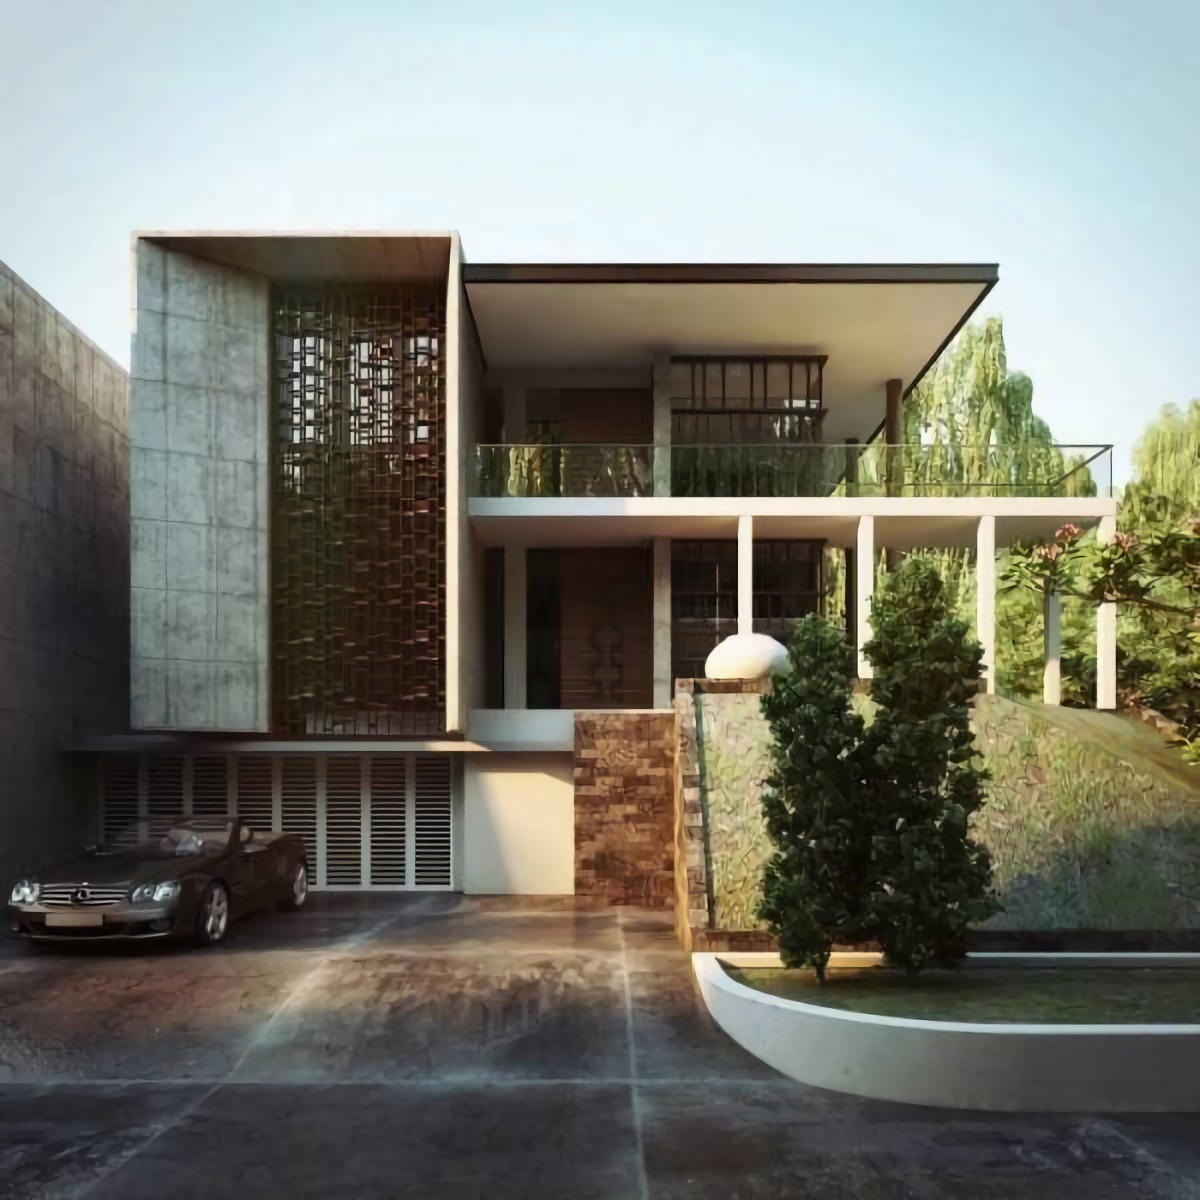 AL House at Alam Sutra karya Nelson Liaw tahun 2014 (Sumber: arsitag.com)